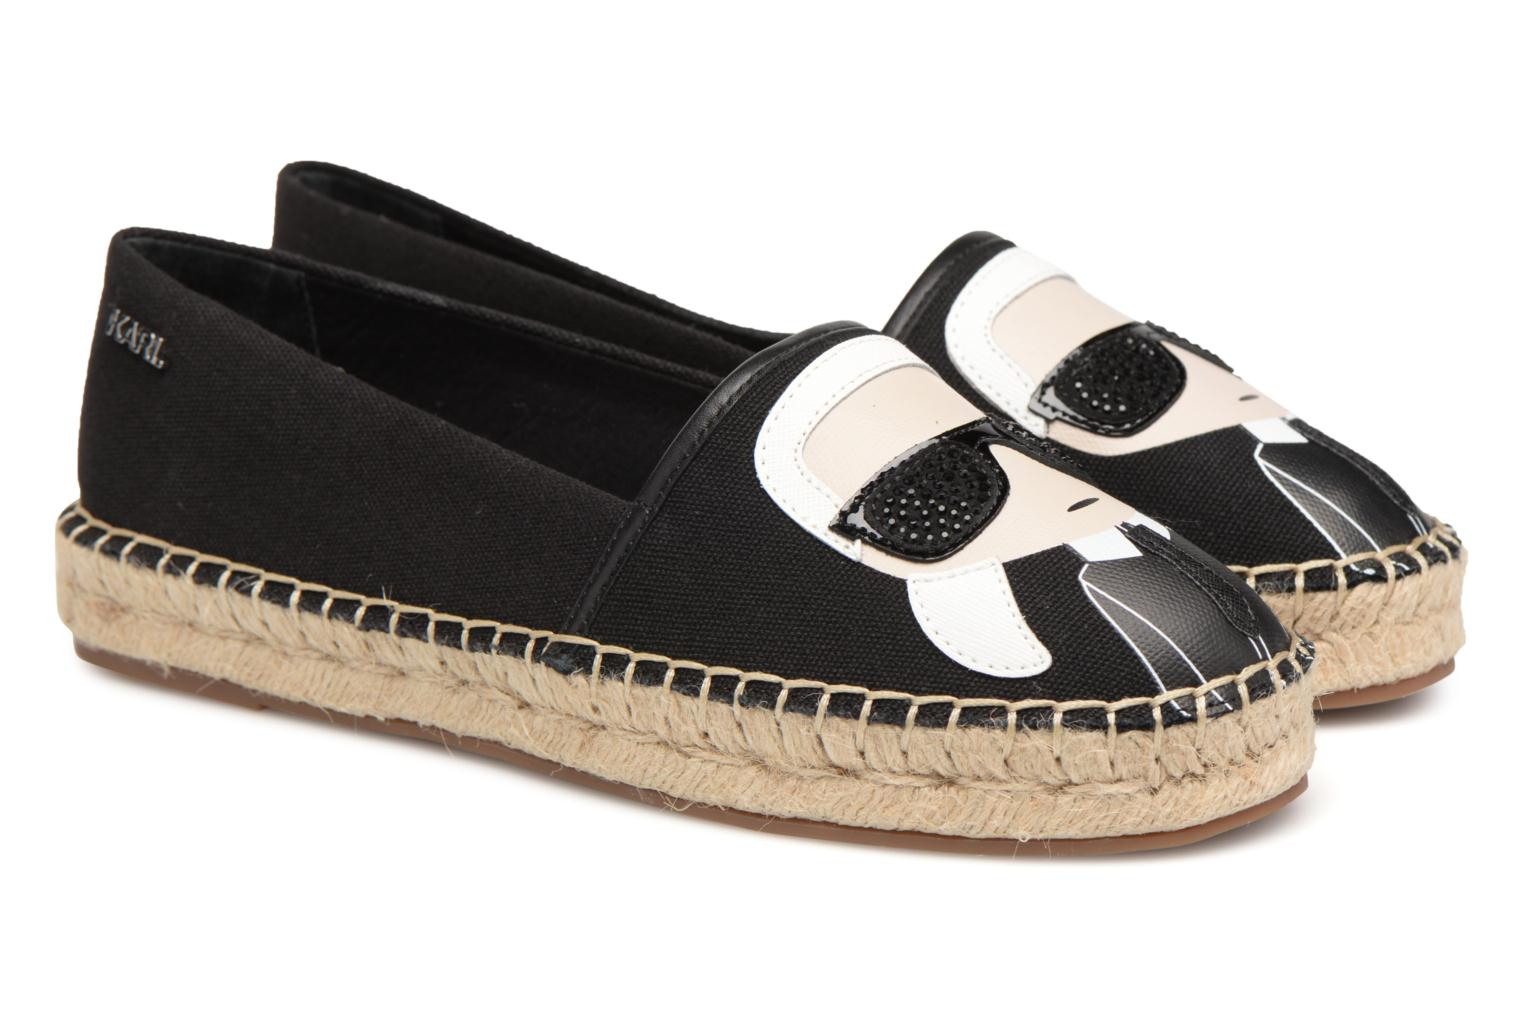 KAMINI Karl Ikonic Slip On Black